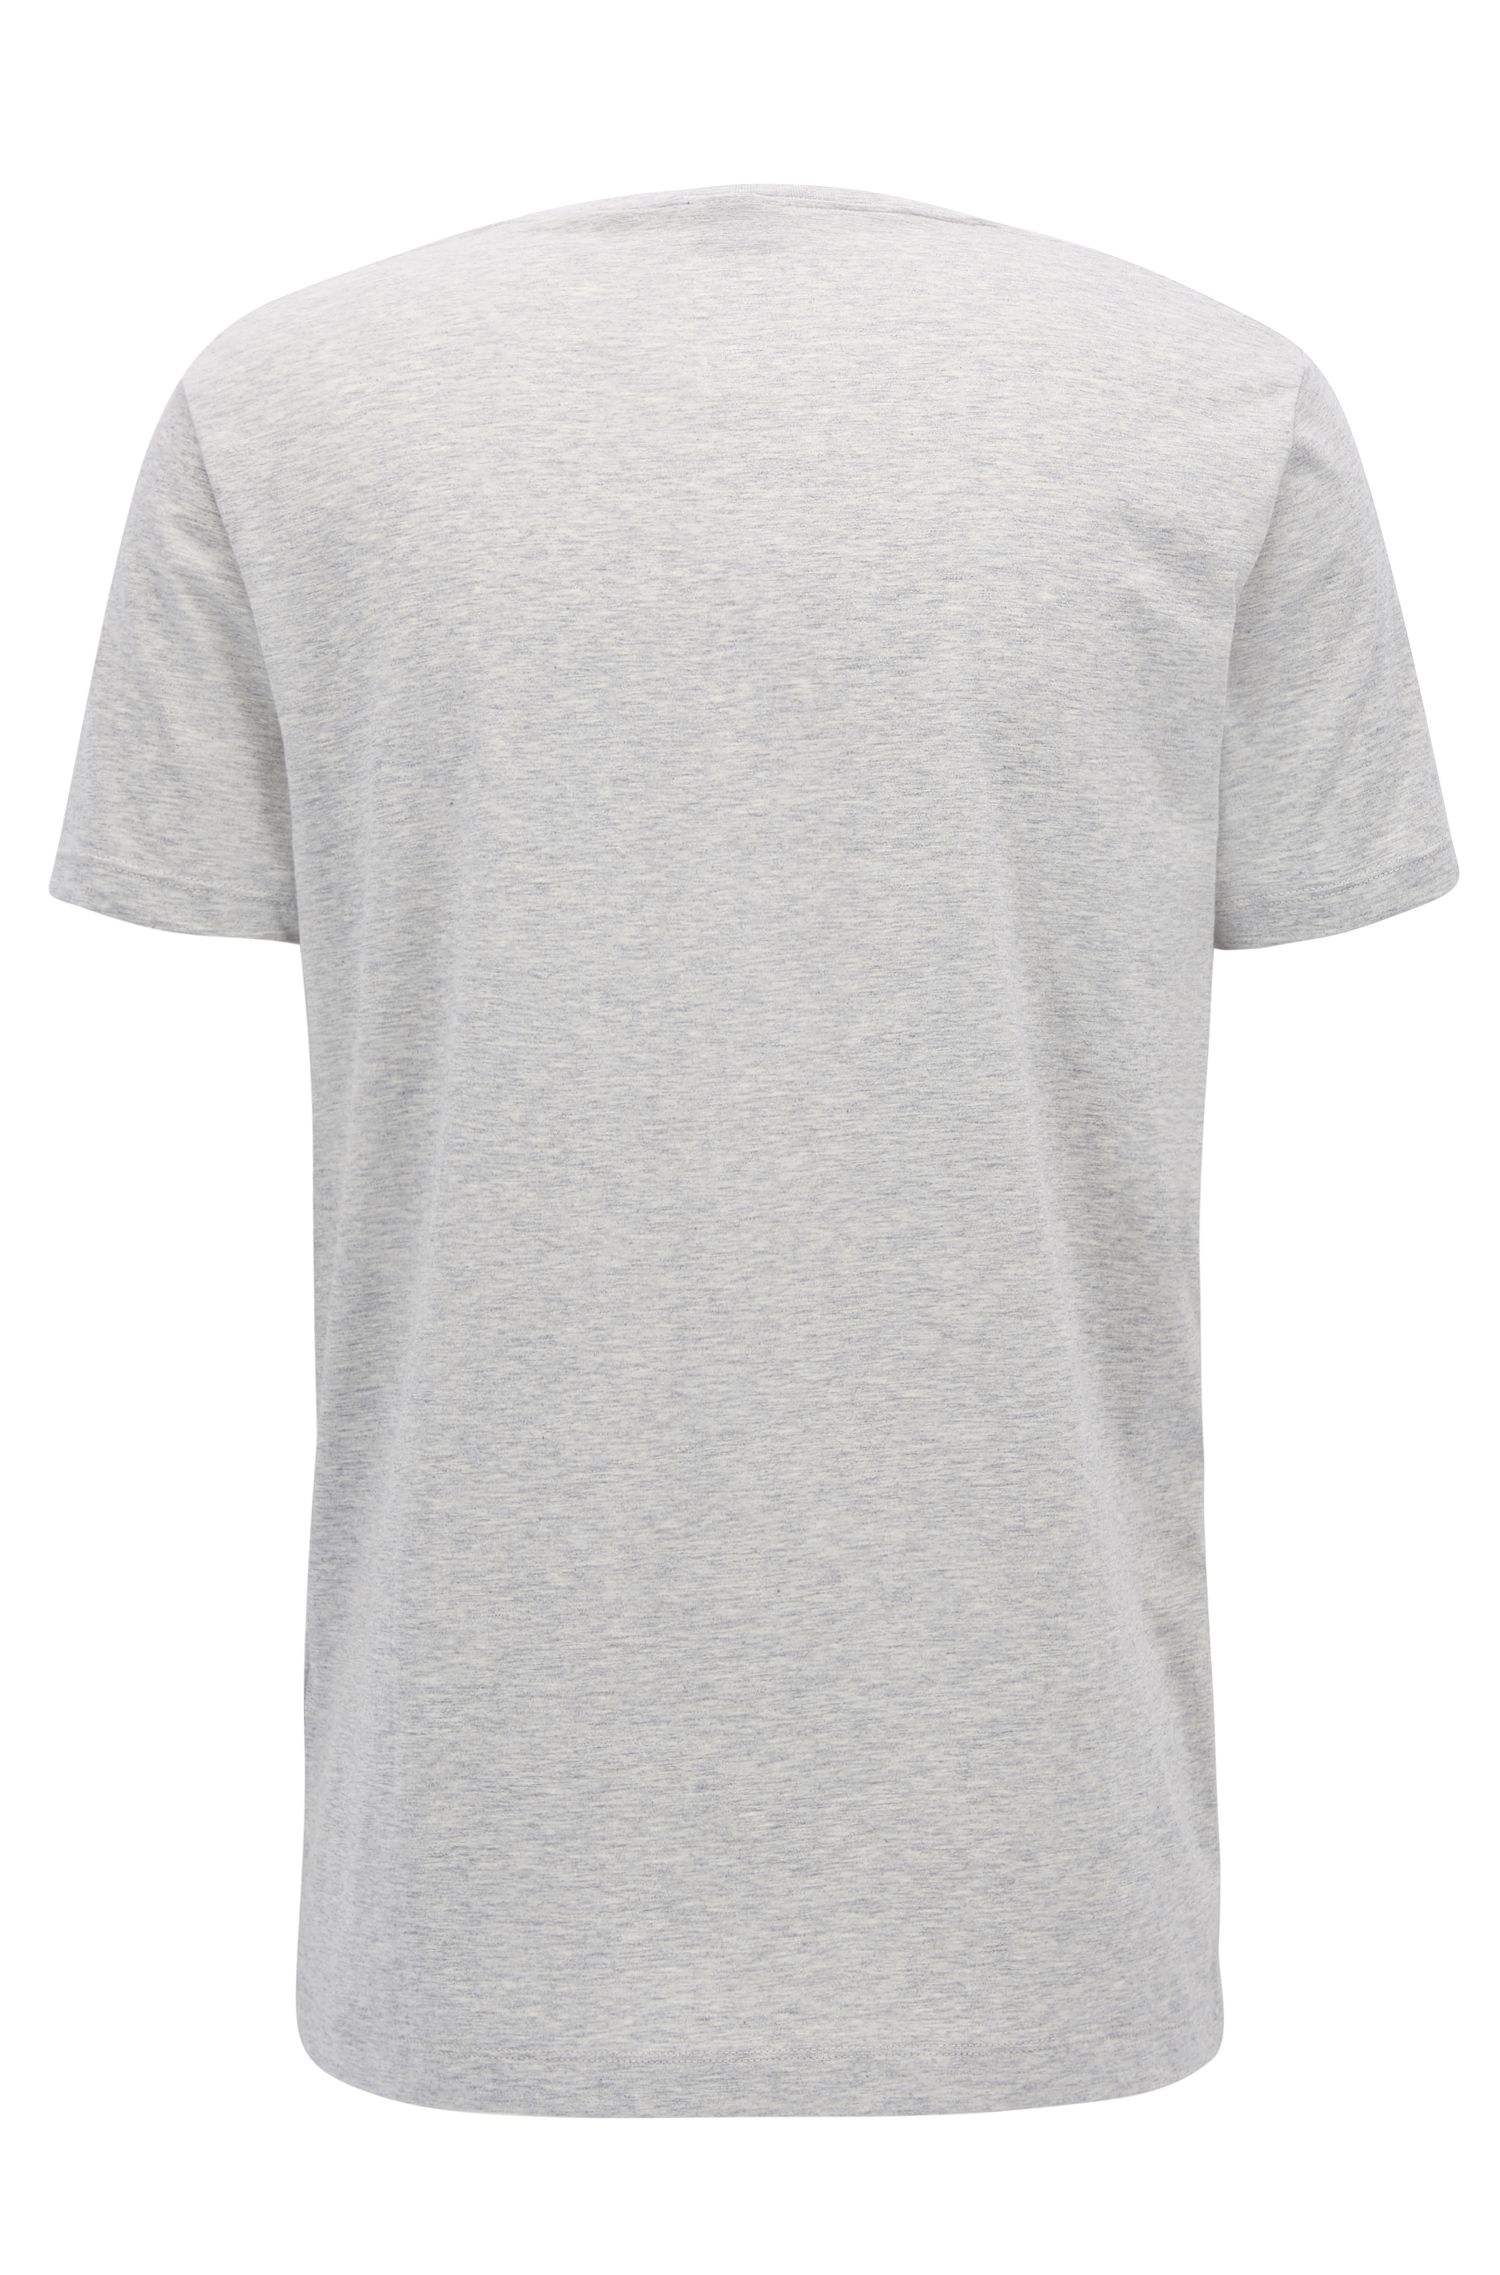 T-shirt Regular Fit en coton doux, Gris chiné